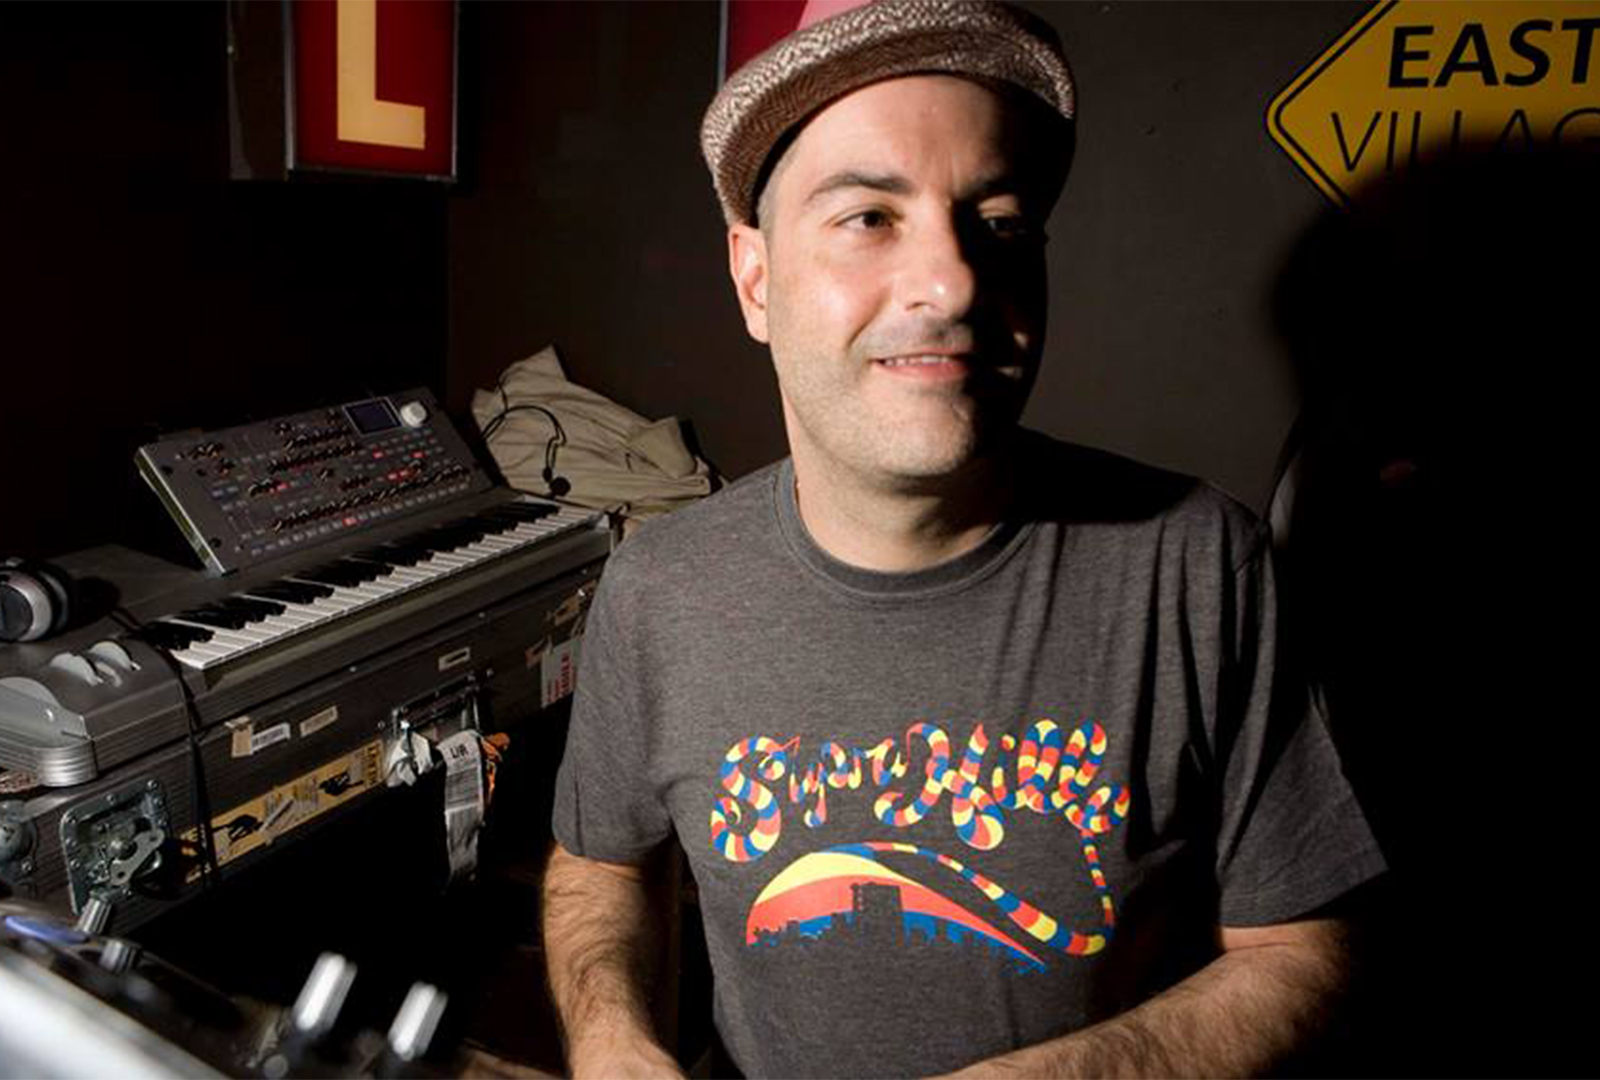 Producer and DJ Phil Asher has died, aged 50